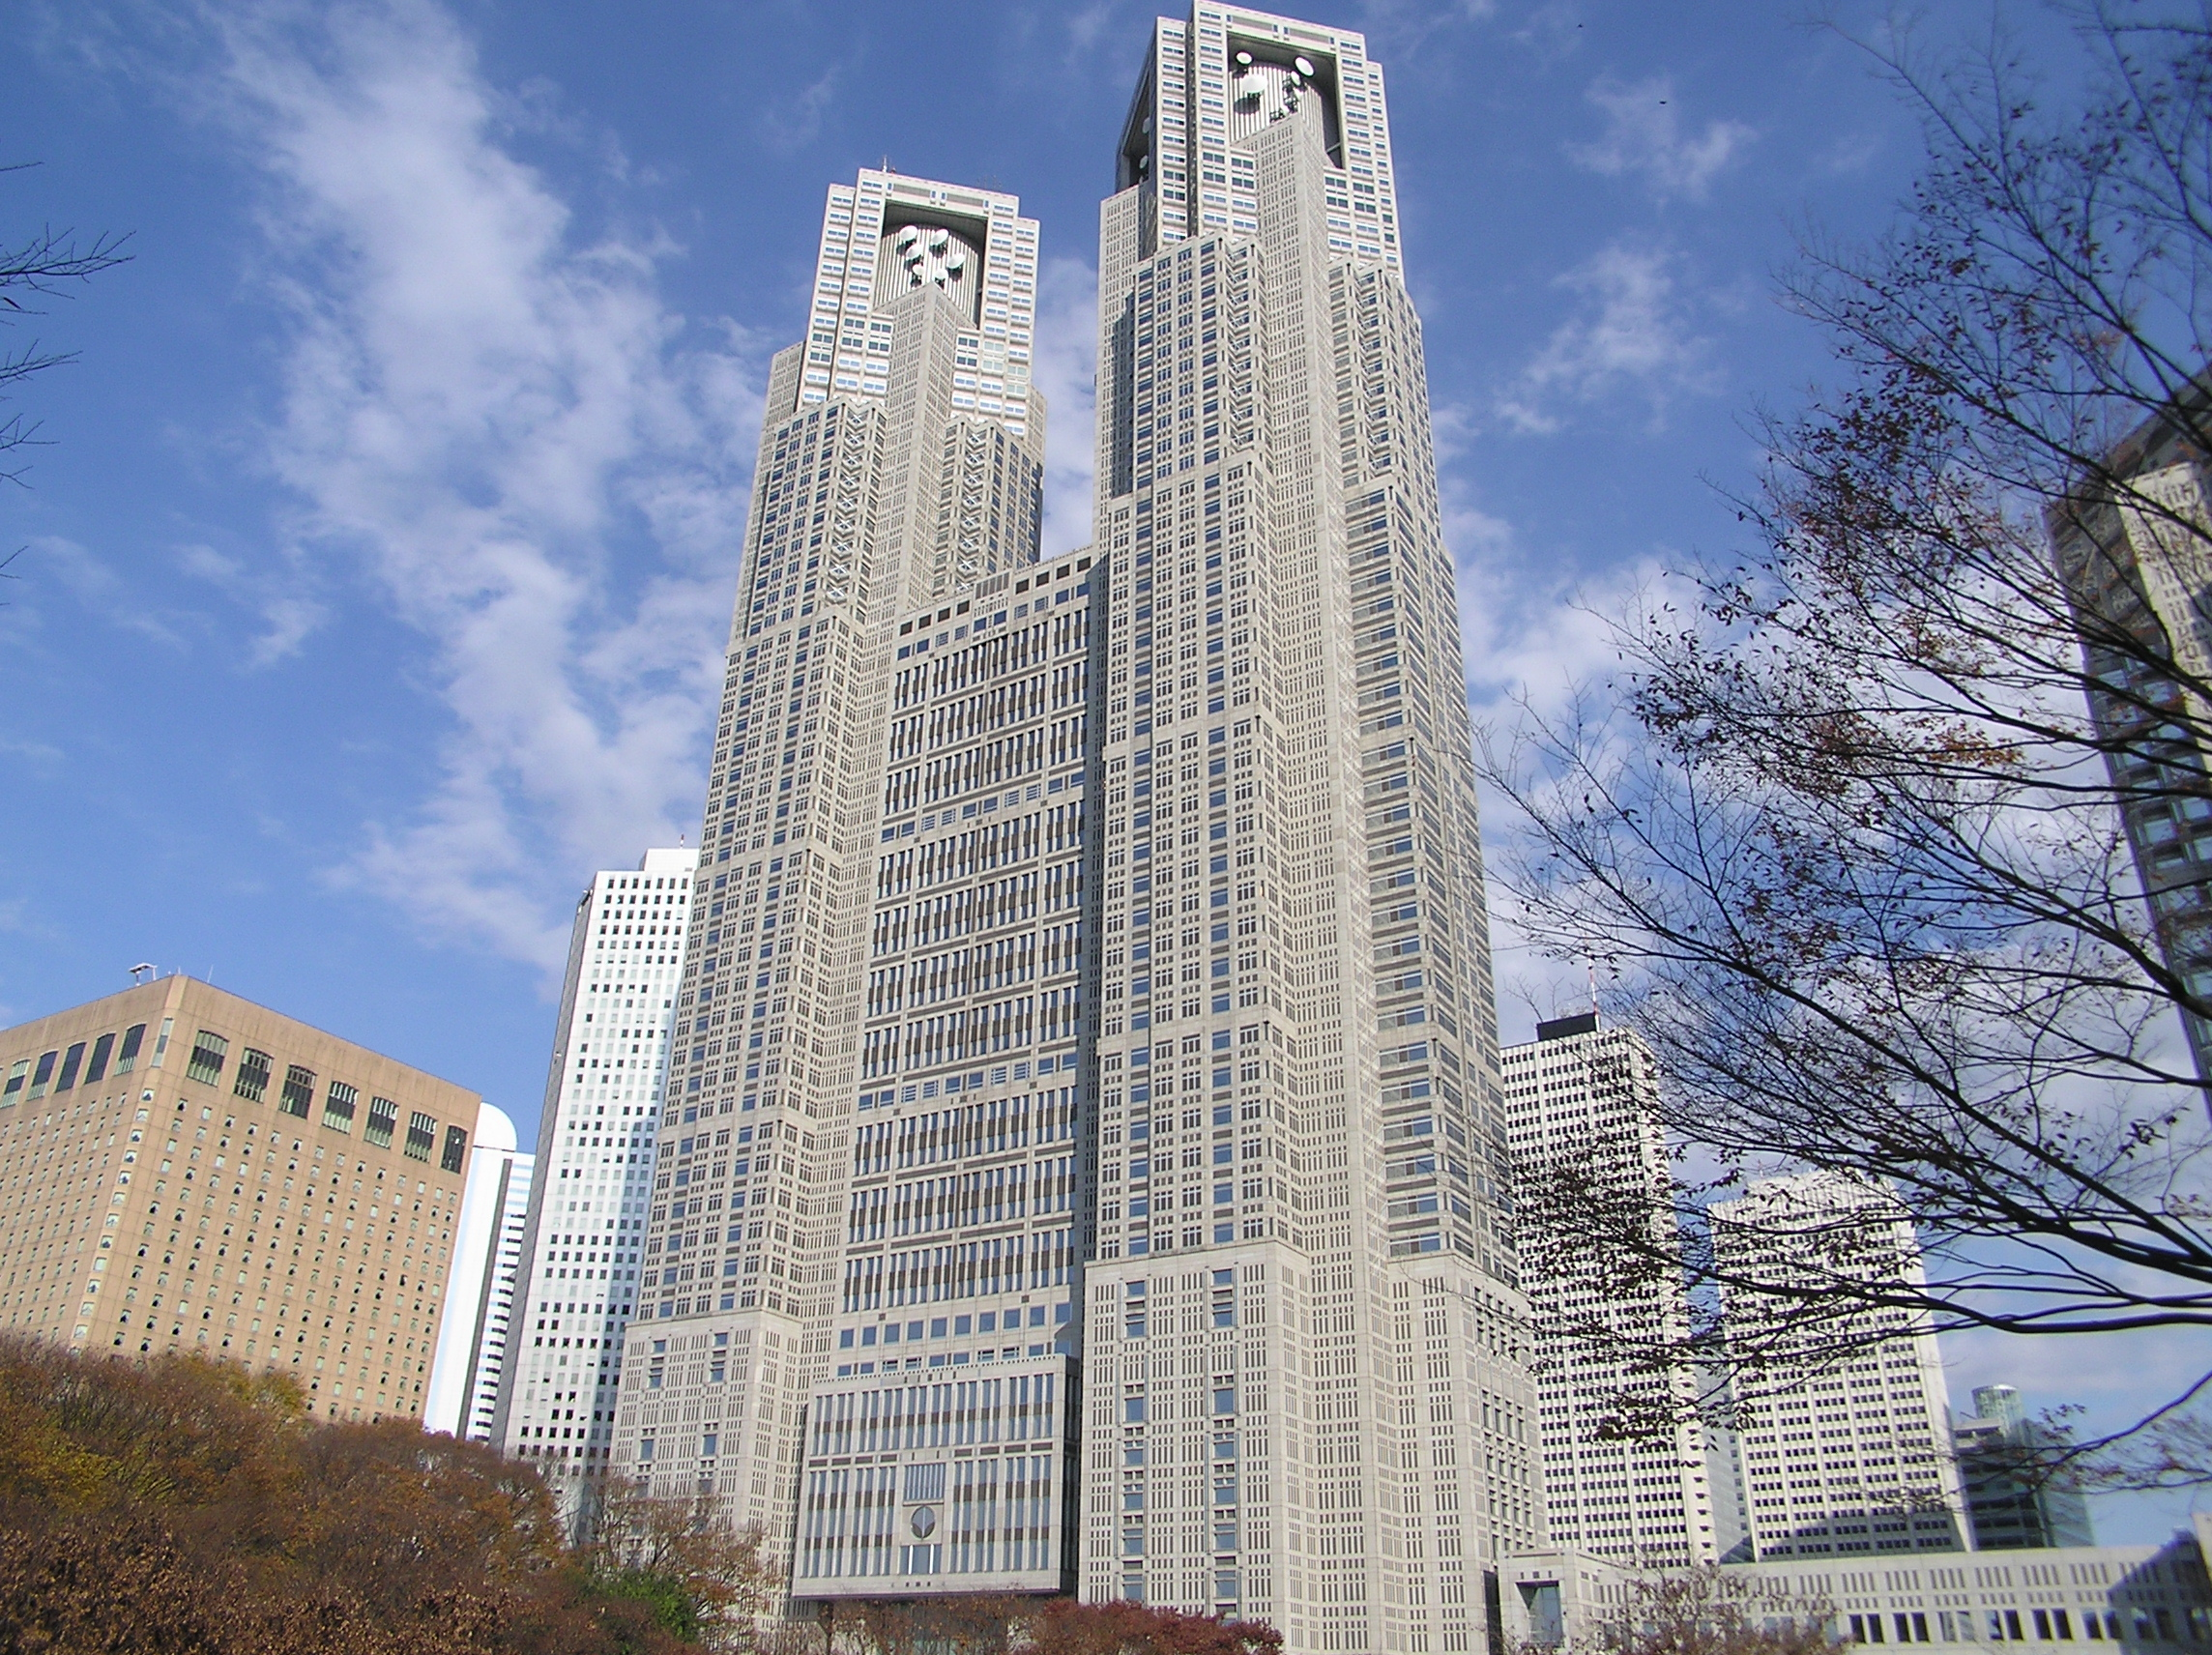 https://upload.wikimedia.org/wikipedia/commons/e/eb/Tokyo_Metropolitan_Government_Building_no1_Tocho_06_7_December_2003.jpg